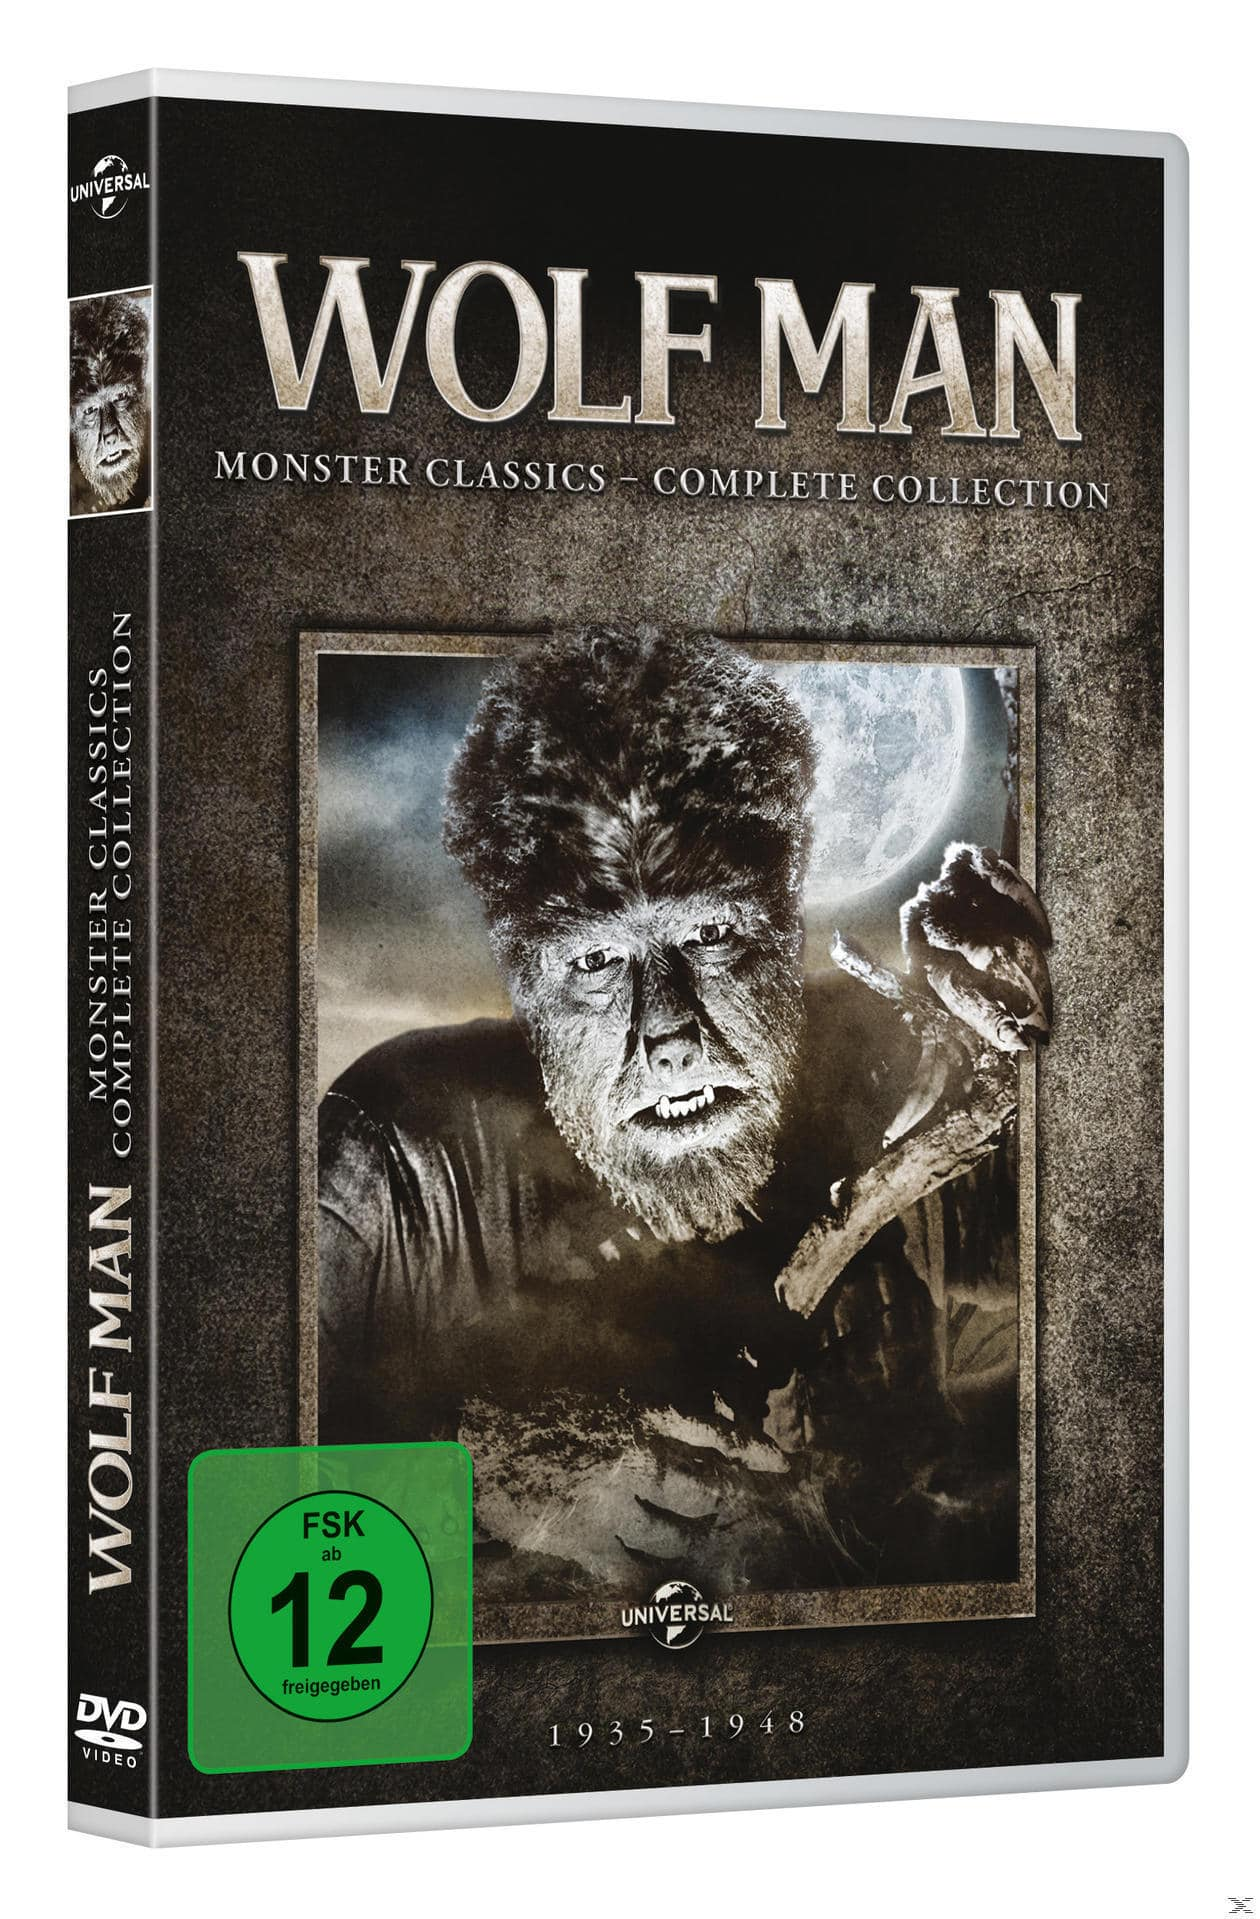 The Wolf Man: Monster Classics - Complete Collection DVD-Box (DVD) für 27,96 Euro